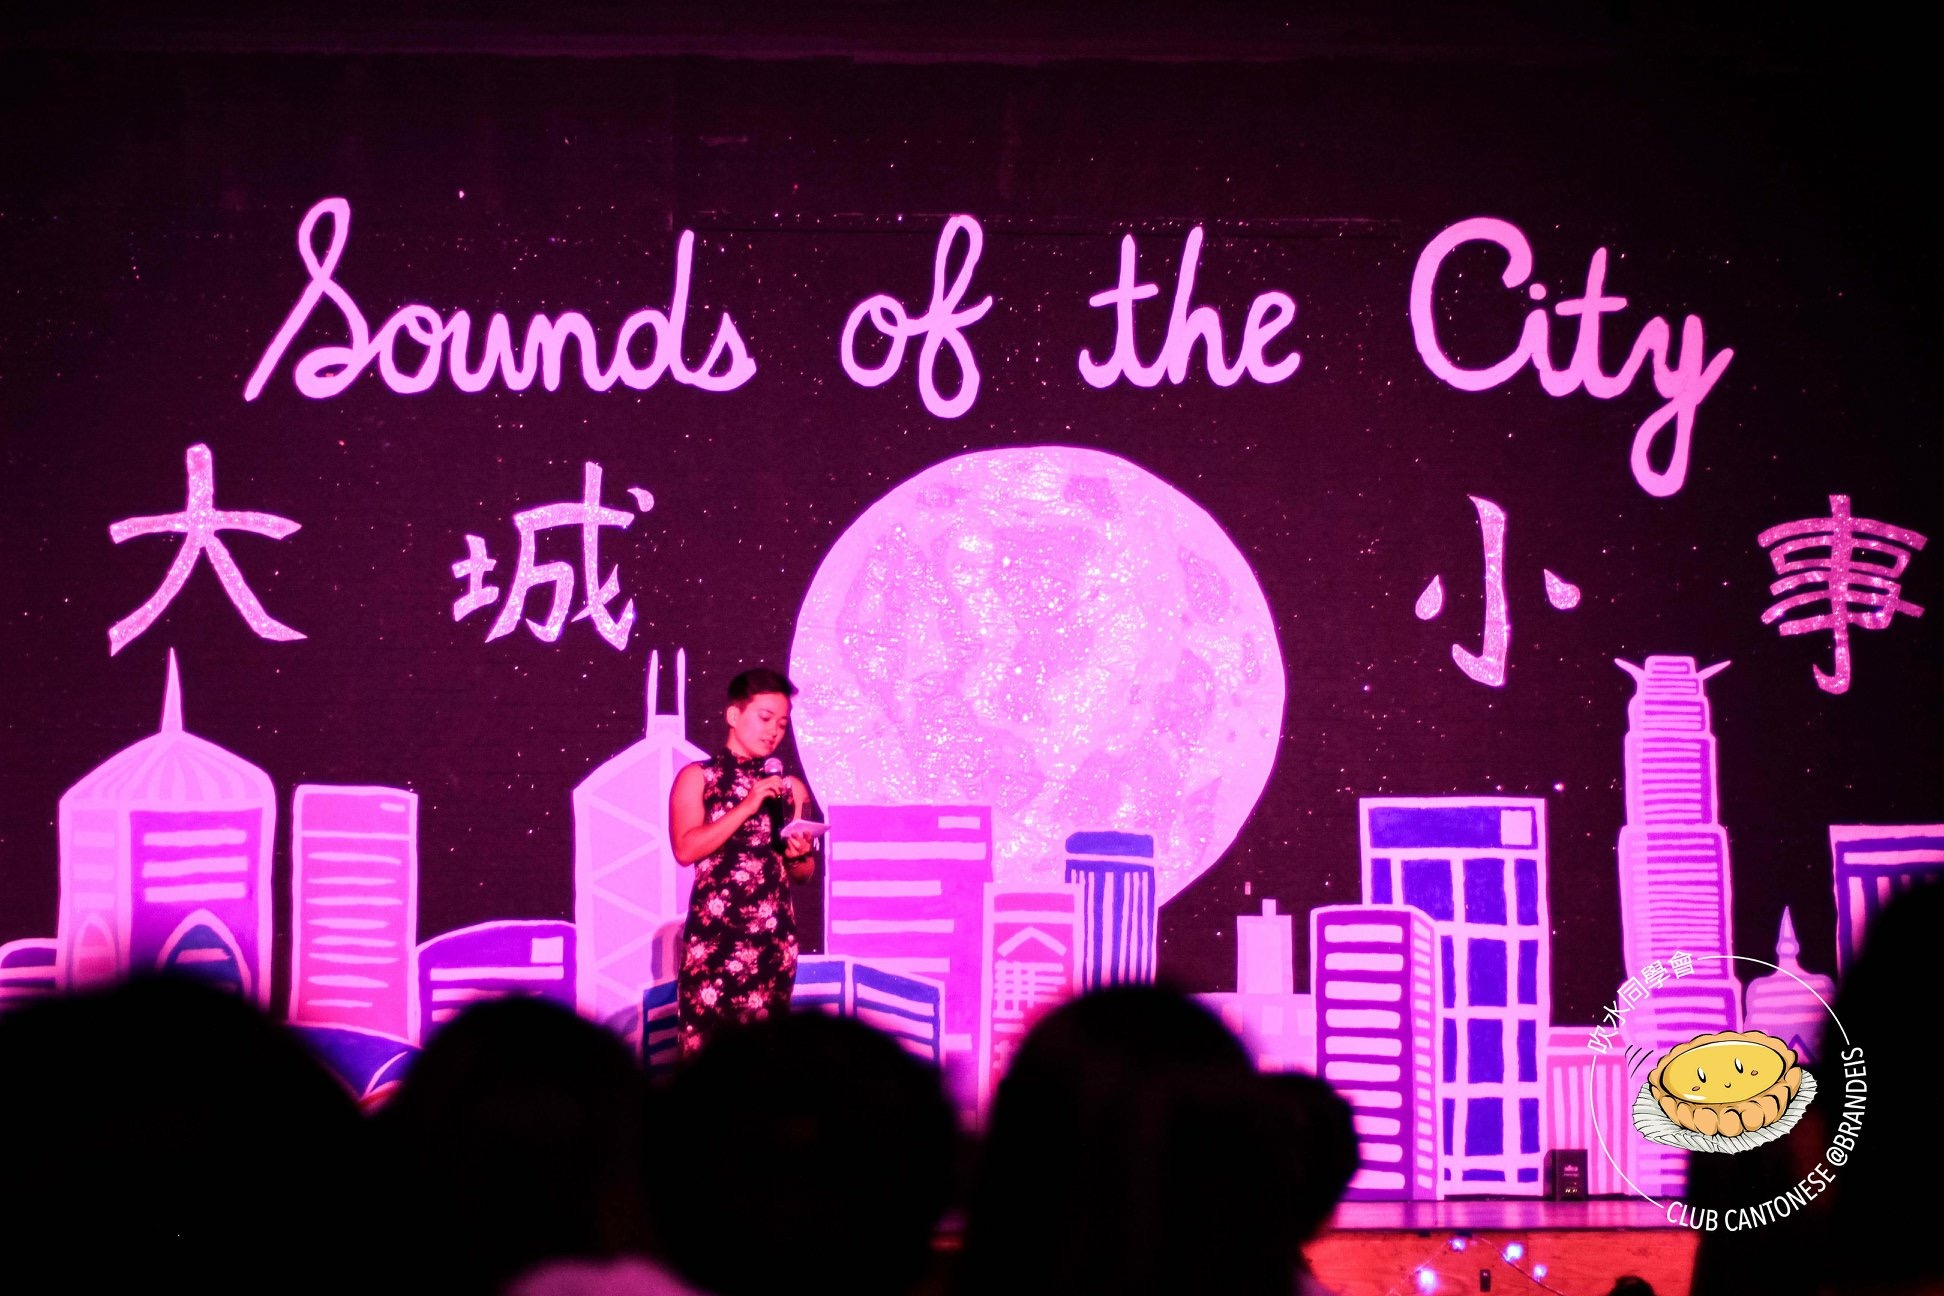 Speaking at Brandeis Cantonese Club's 2019 Culture Show on how curiosity about my family's history has empowered me to embrace myself as queer, biracial, Chinese American, and enough